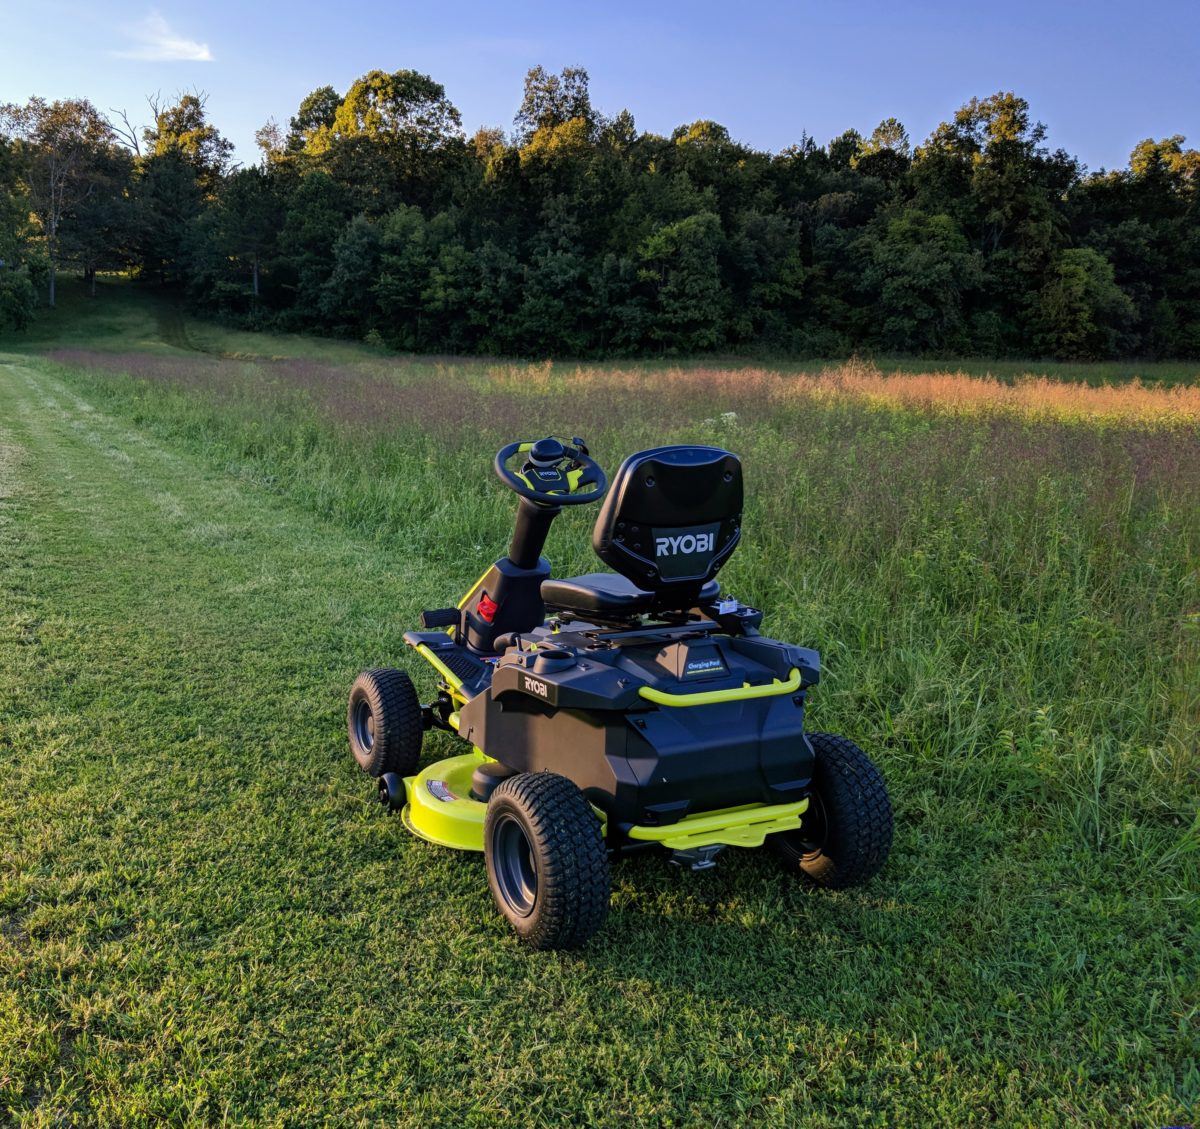 Electric Lawn Mower Sale Ryobi Electric Riding Lawn Mower Reviews